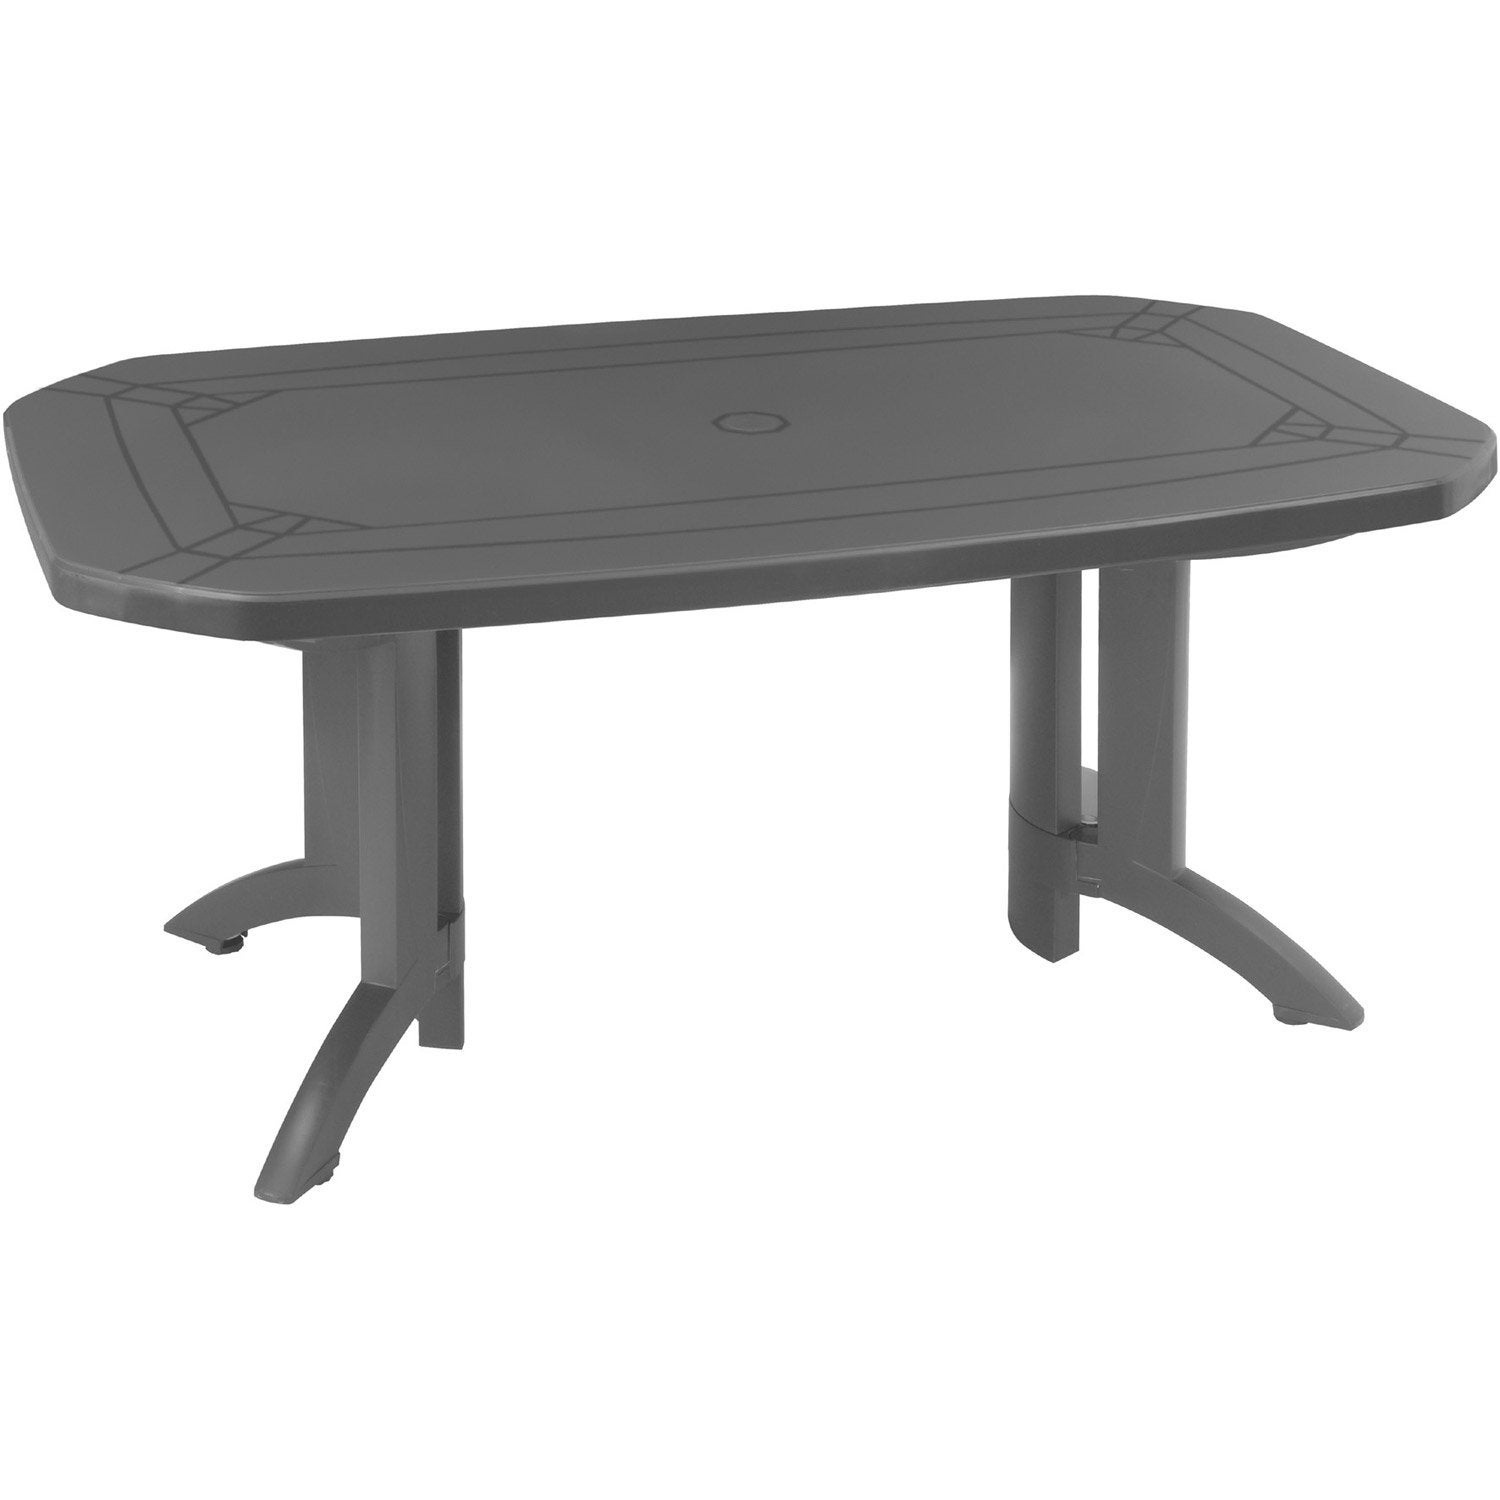 Table de jardin grosfillex v ga rectangulaire anthracite 6 - Leroy merlin table pliante ...